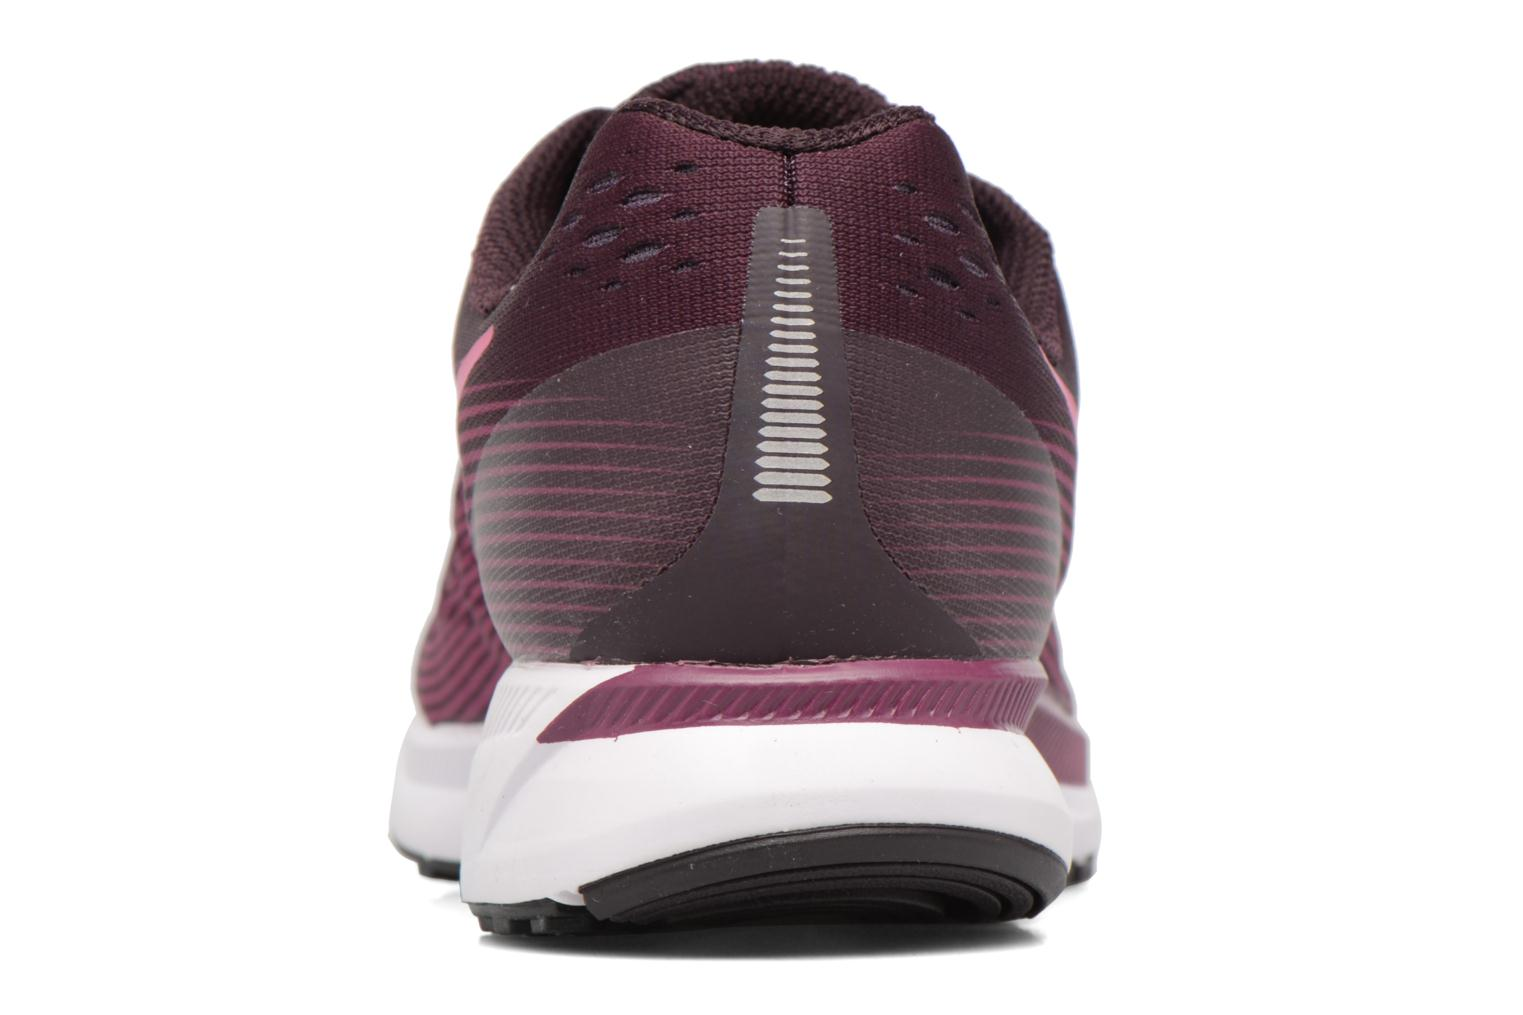 Wmns Nike Air Zoom Pegasus 34 Port Wine/Deadly Pink-Tea Berry-Black